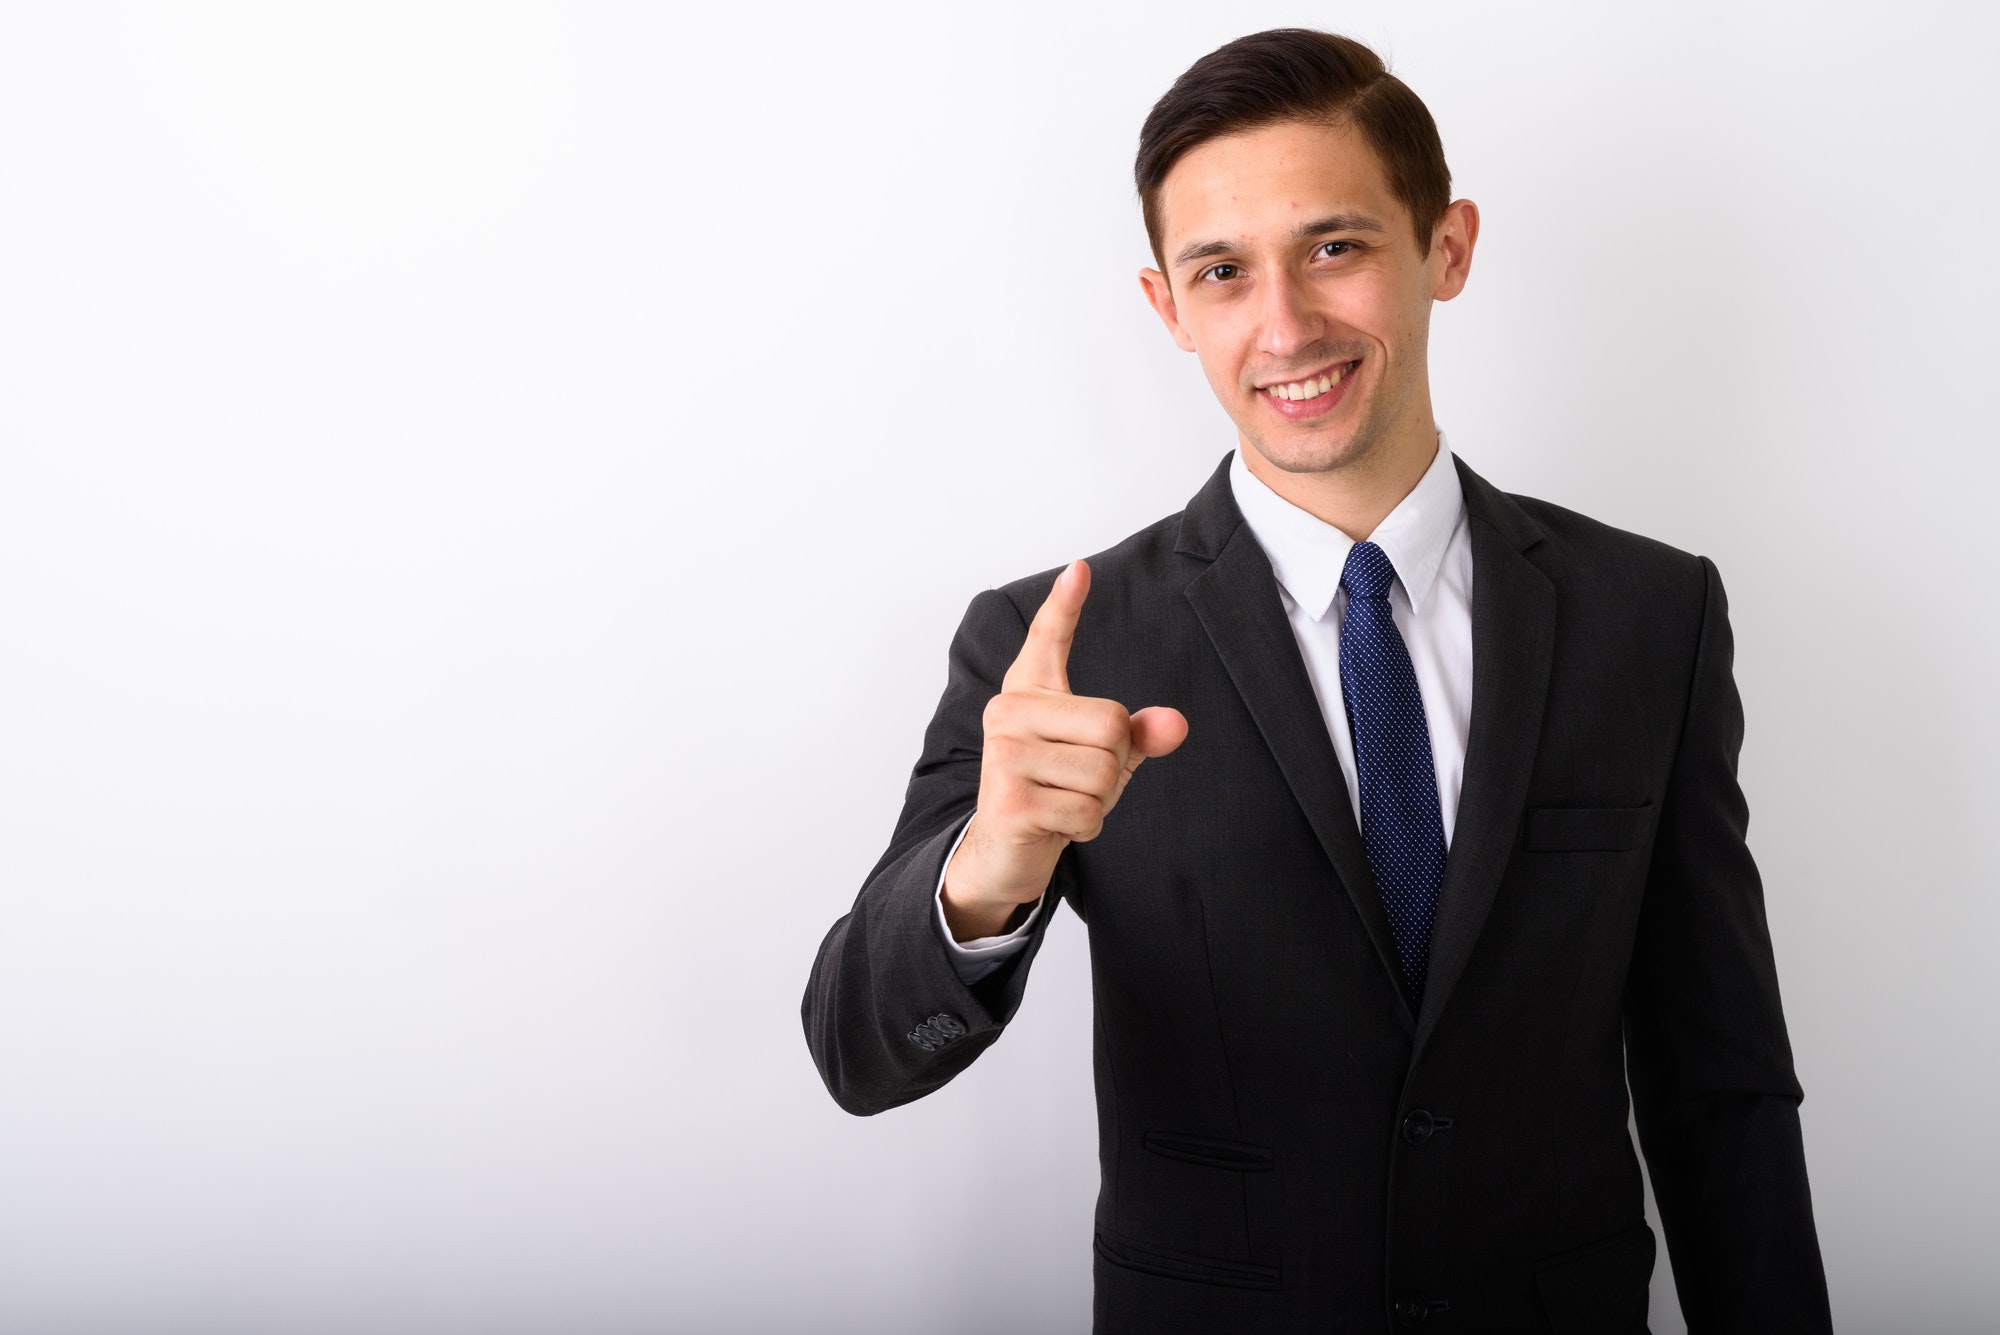 Studio shot of young happy businessman smiling while pointing fi